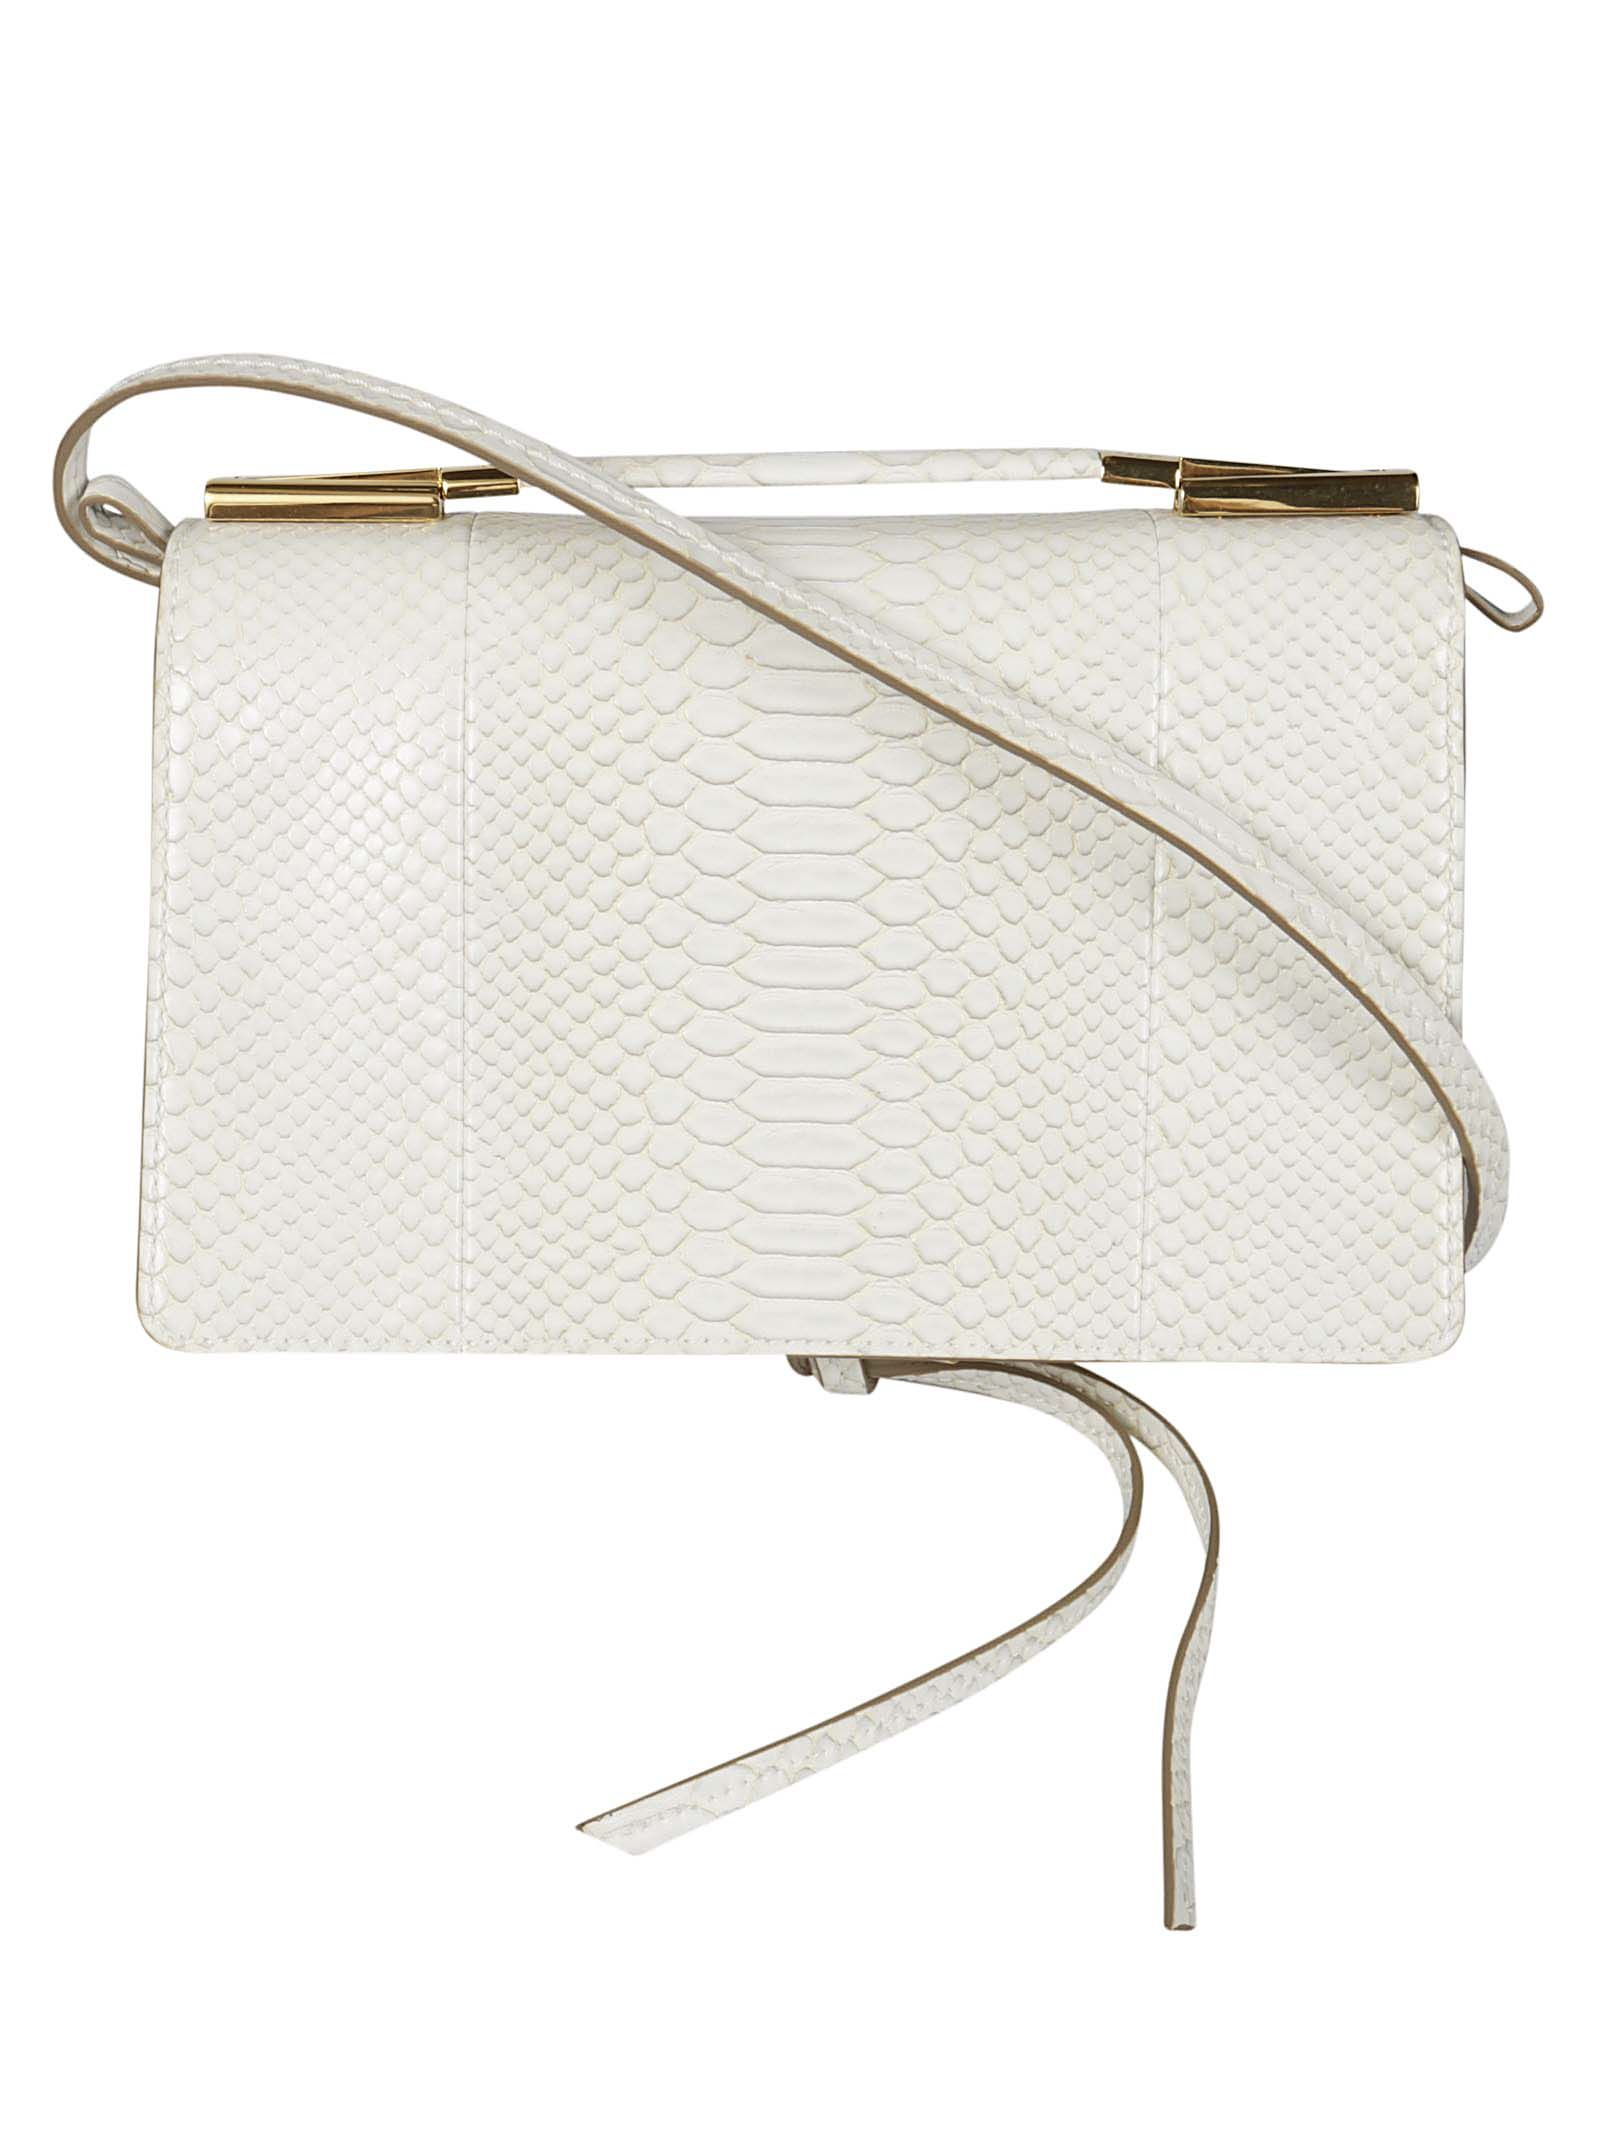 STELLA MCCARTNEY SMALL SNAKE EMBOSSED SHOULDER BAG